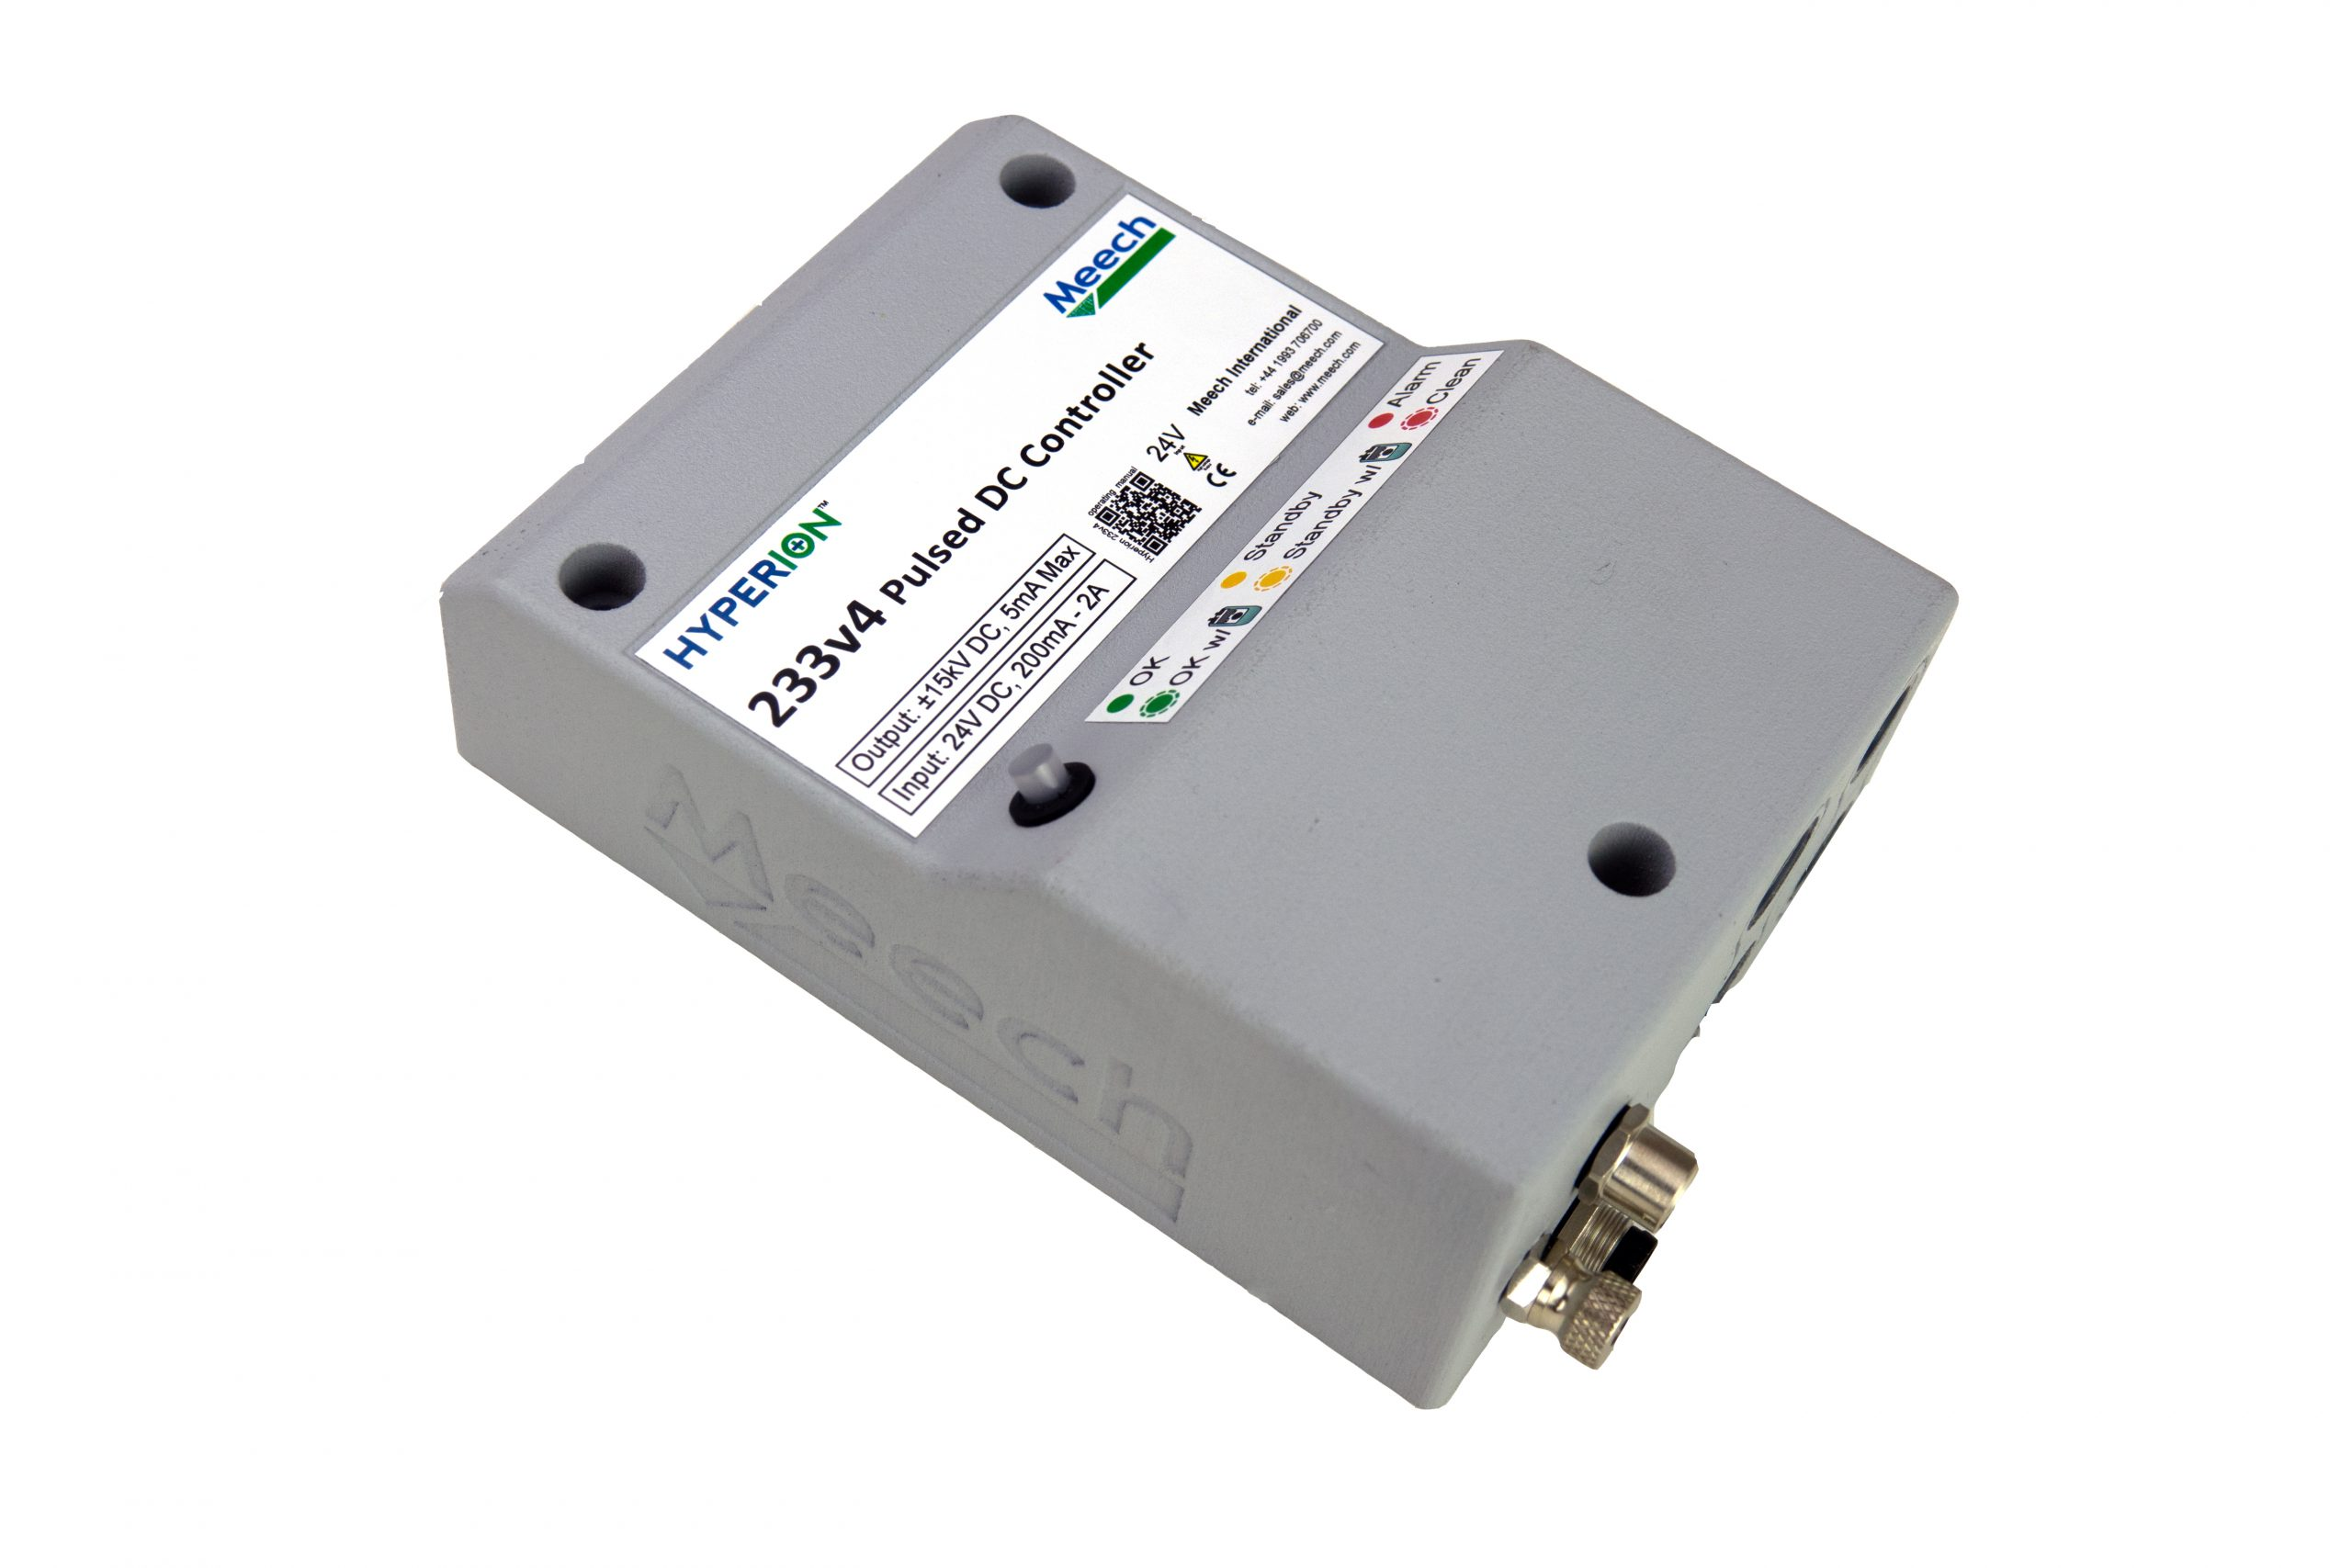 Hyperion 233v4 Pulsed DC Controller